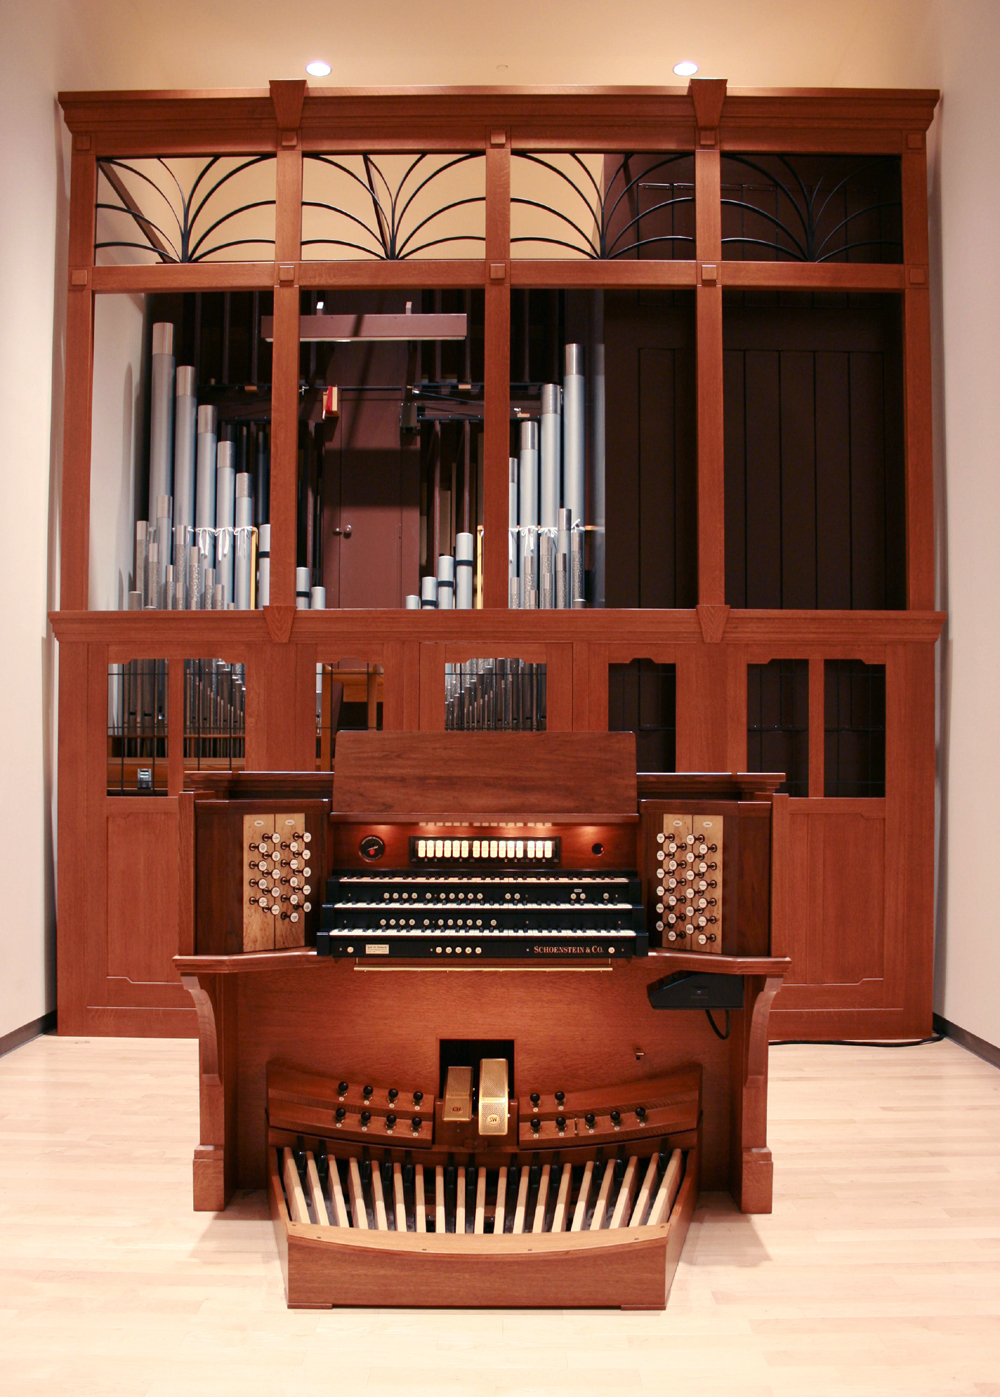 Schoenstein Organ, Op. 158 (2010) at The Juilliard School - New York City  (photo: Steven E. Lawson)